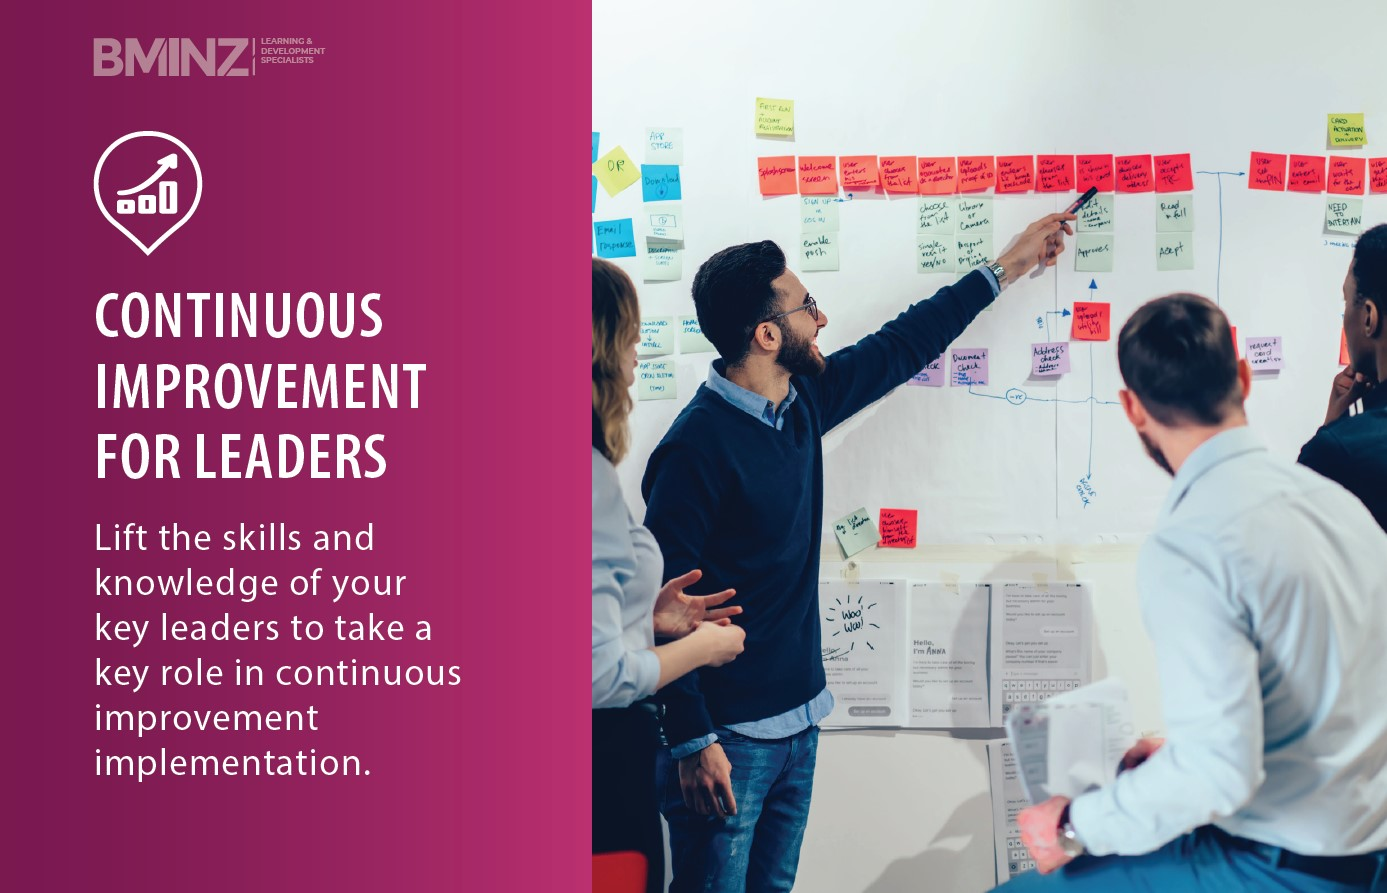 CONTINUOUS IMPROVEMENT FOR LEADERS: Lift the skills and knowledge of your key leaders to take a key role in continuous improvement implementation.